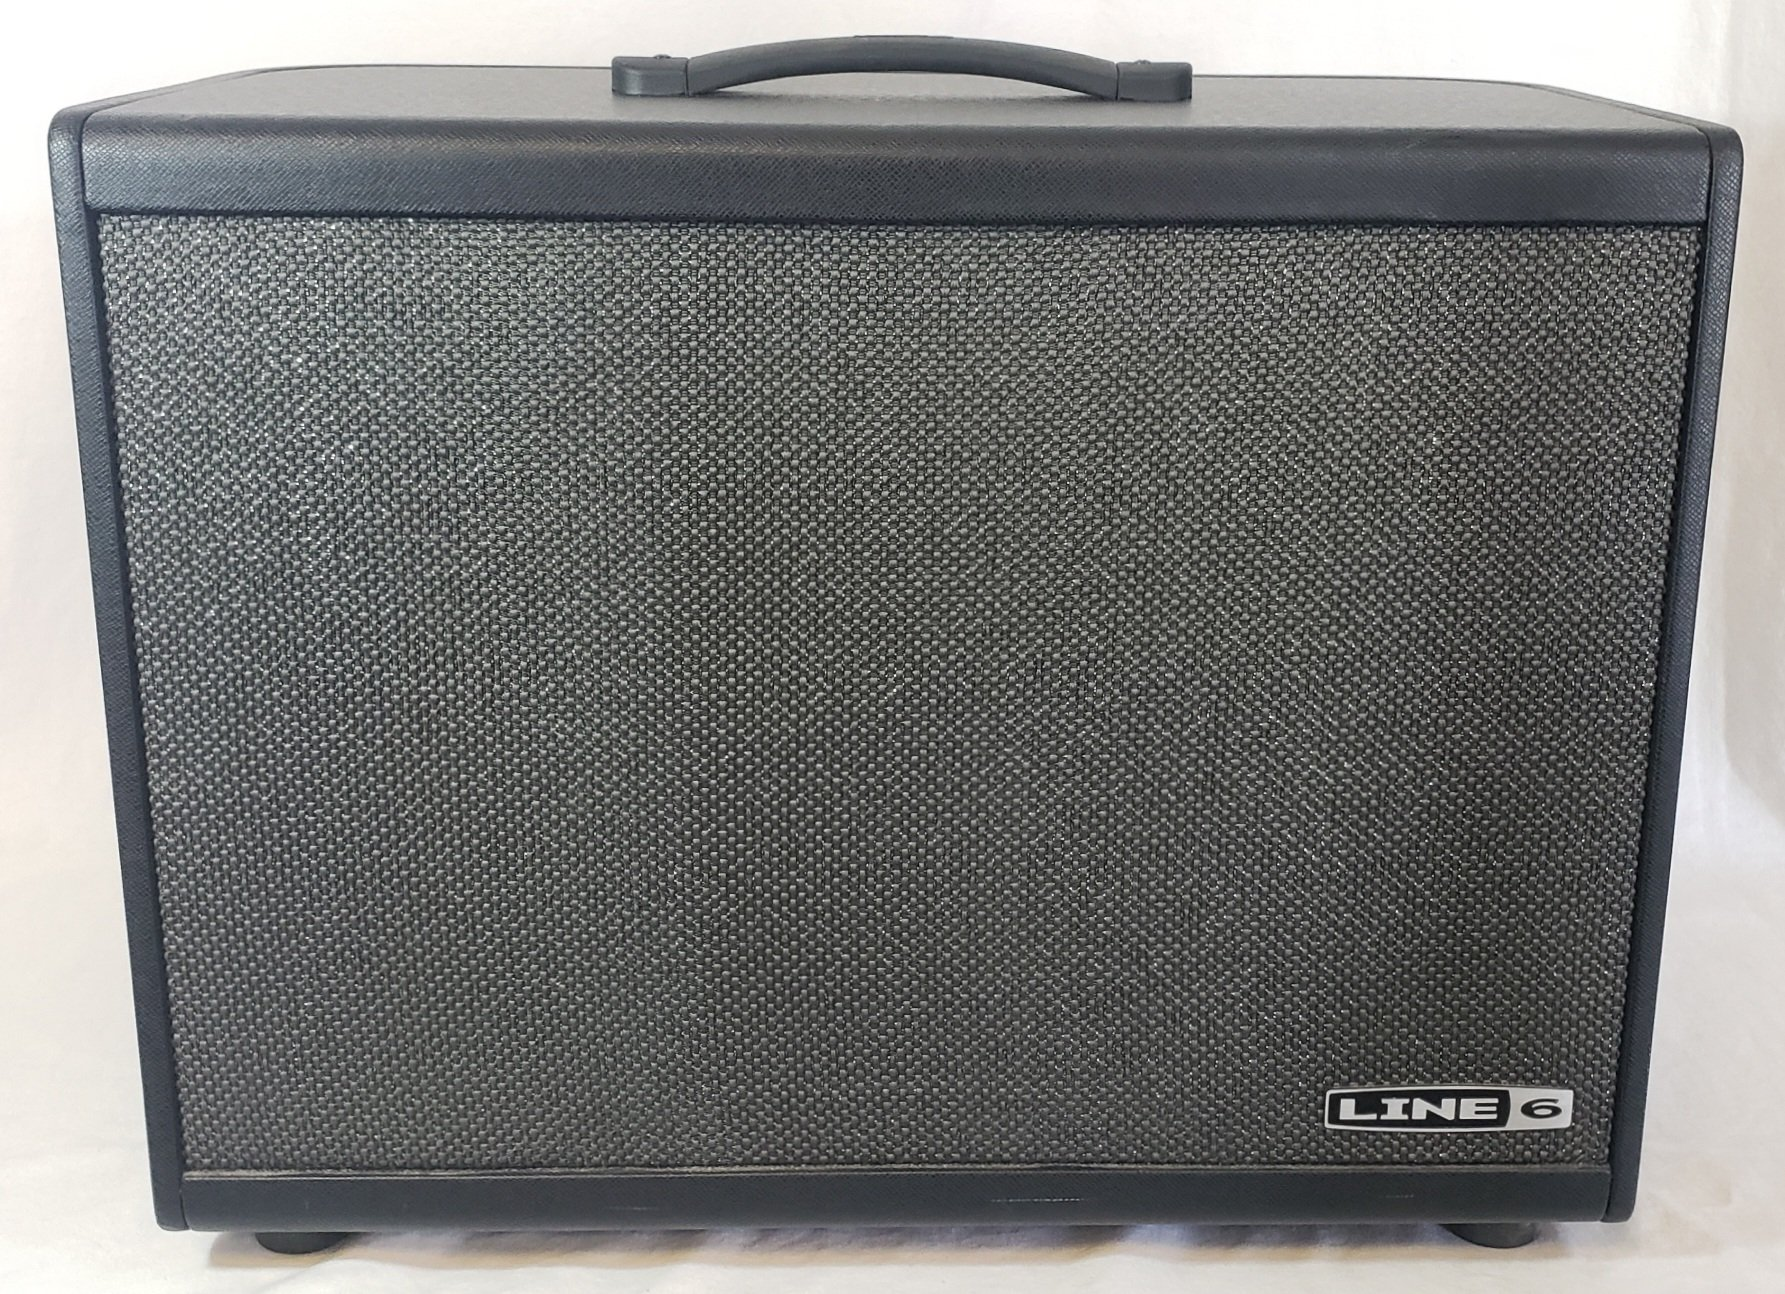 LINE 6 POWERCAB 112 POWERED 1X12 CABINET